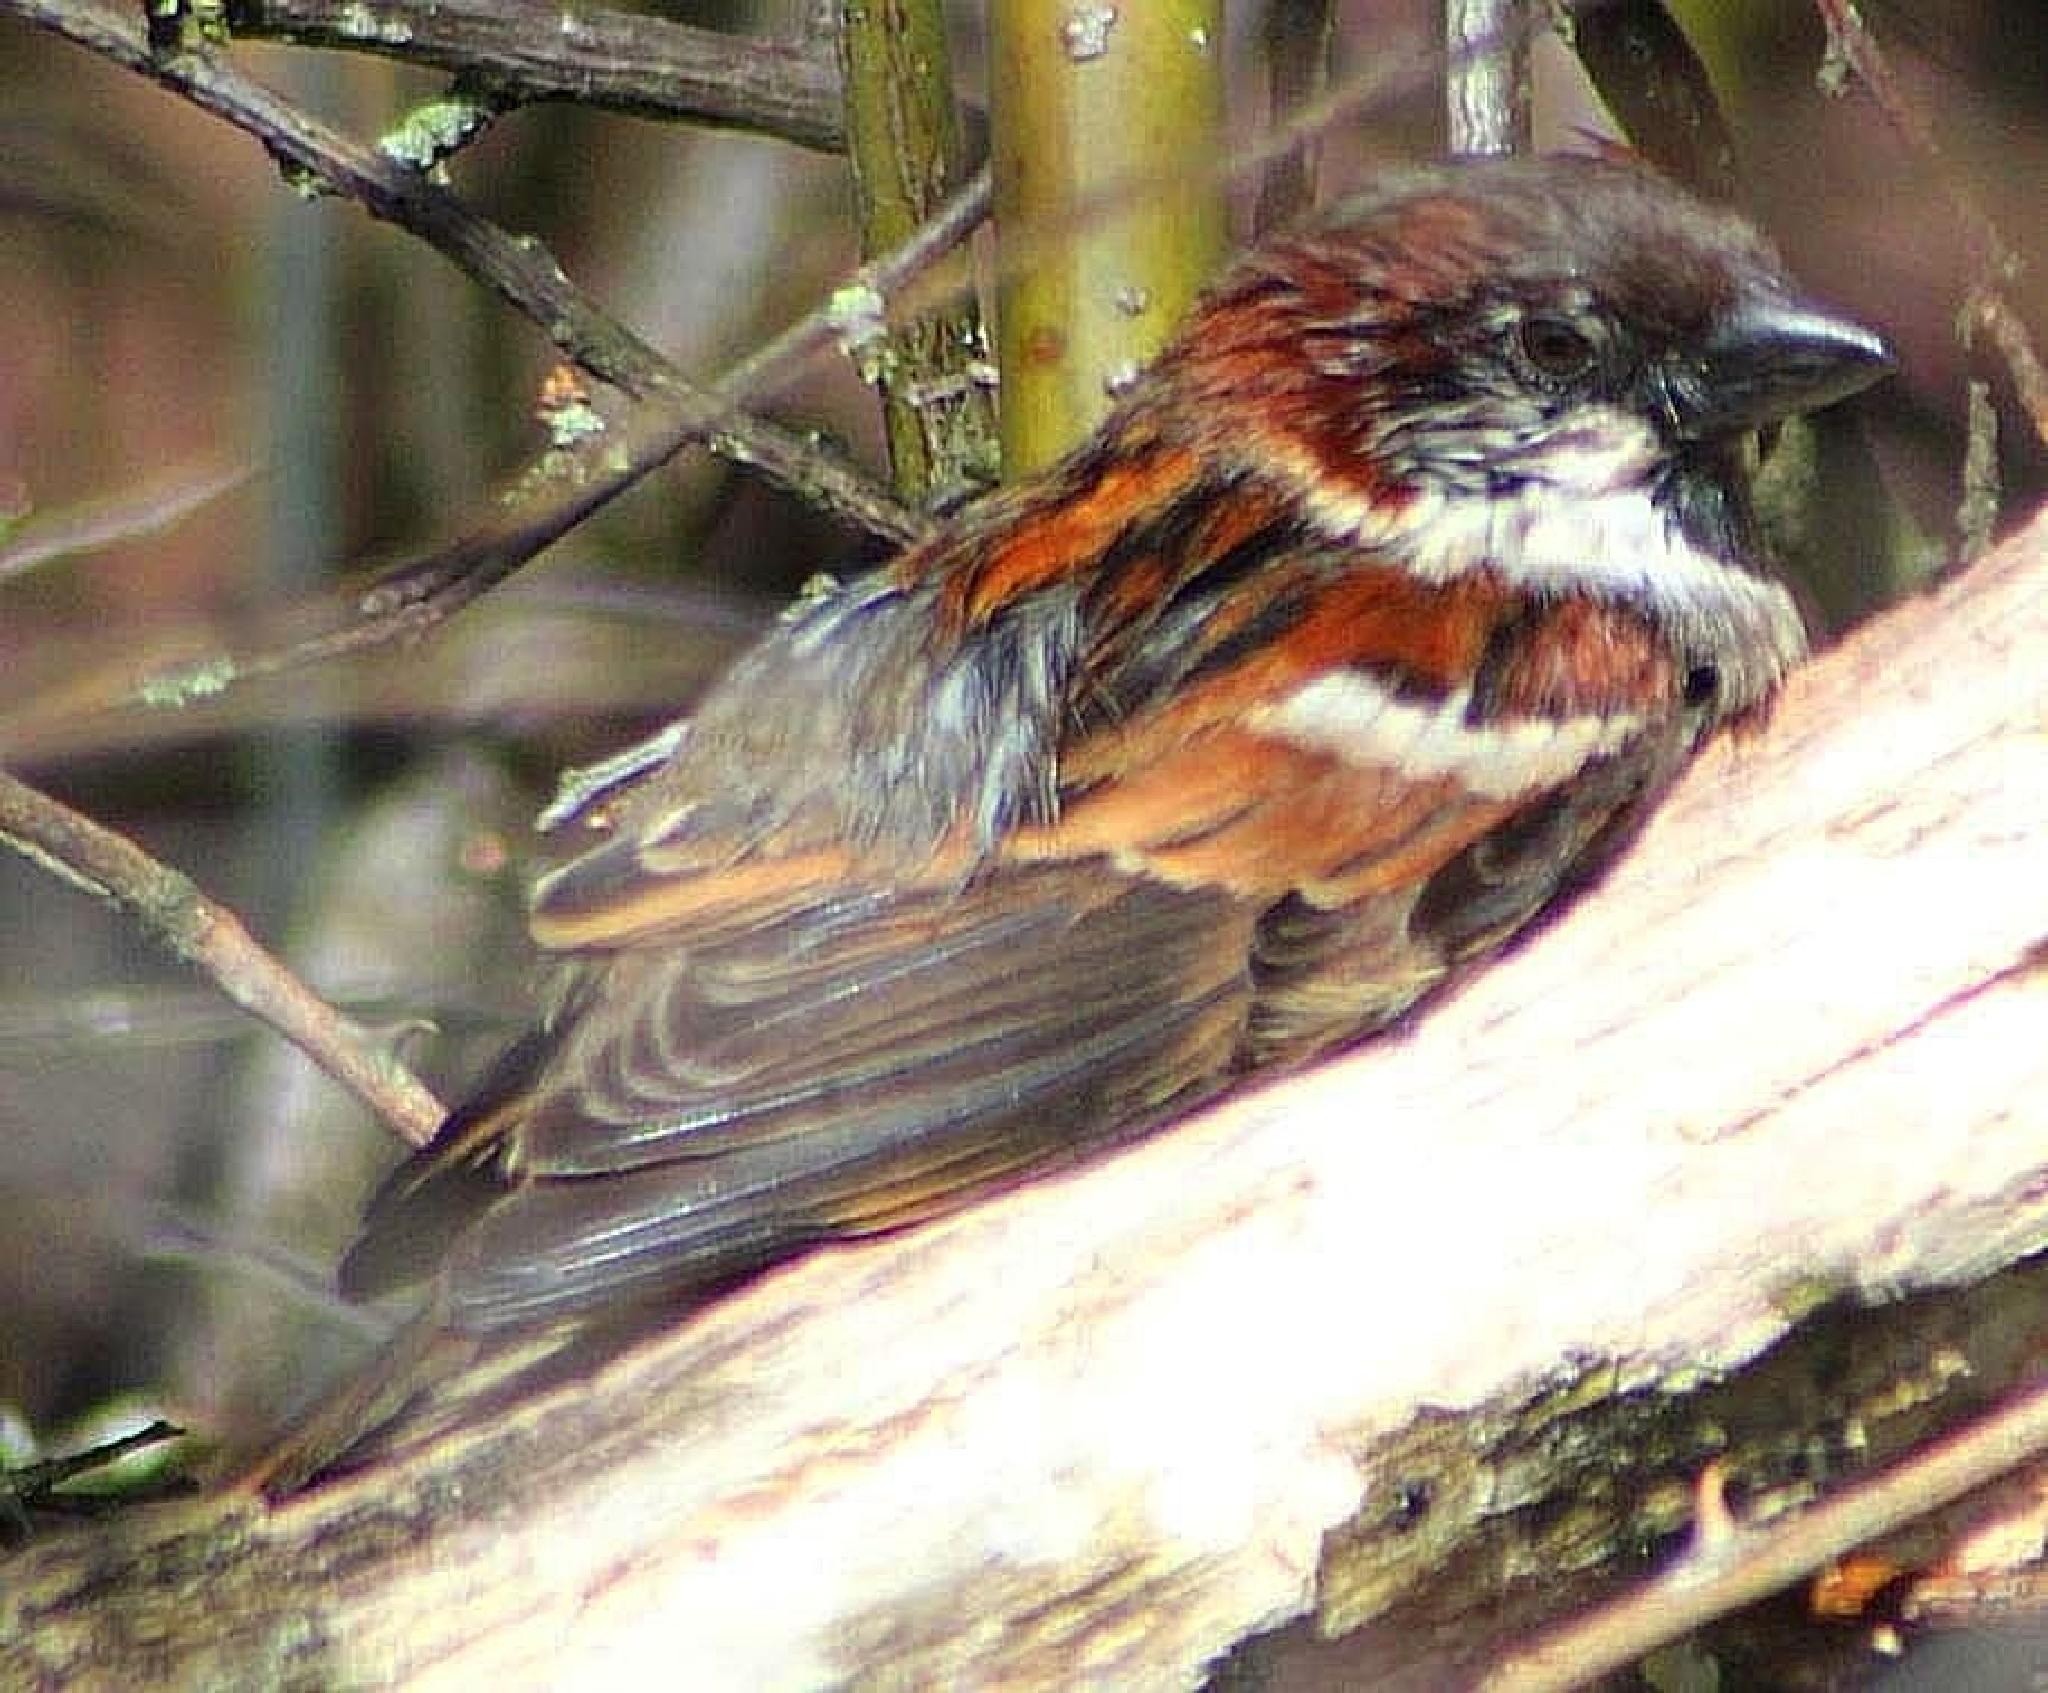 Male Sparrow sun bathing by ralph.cook2